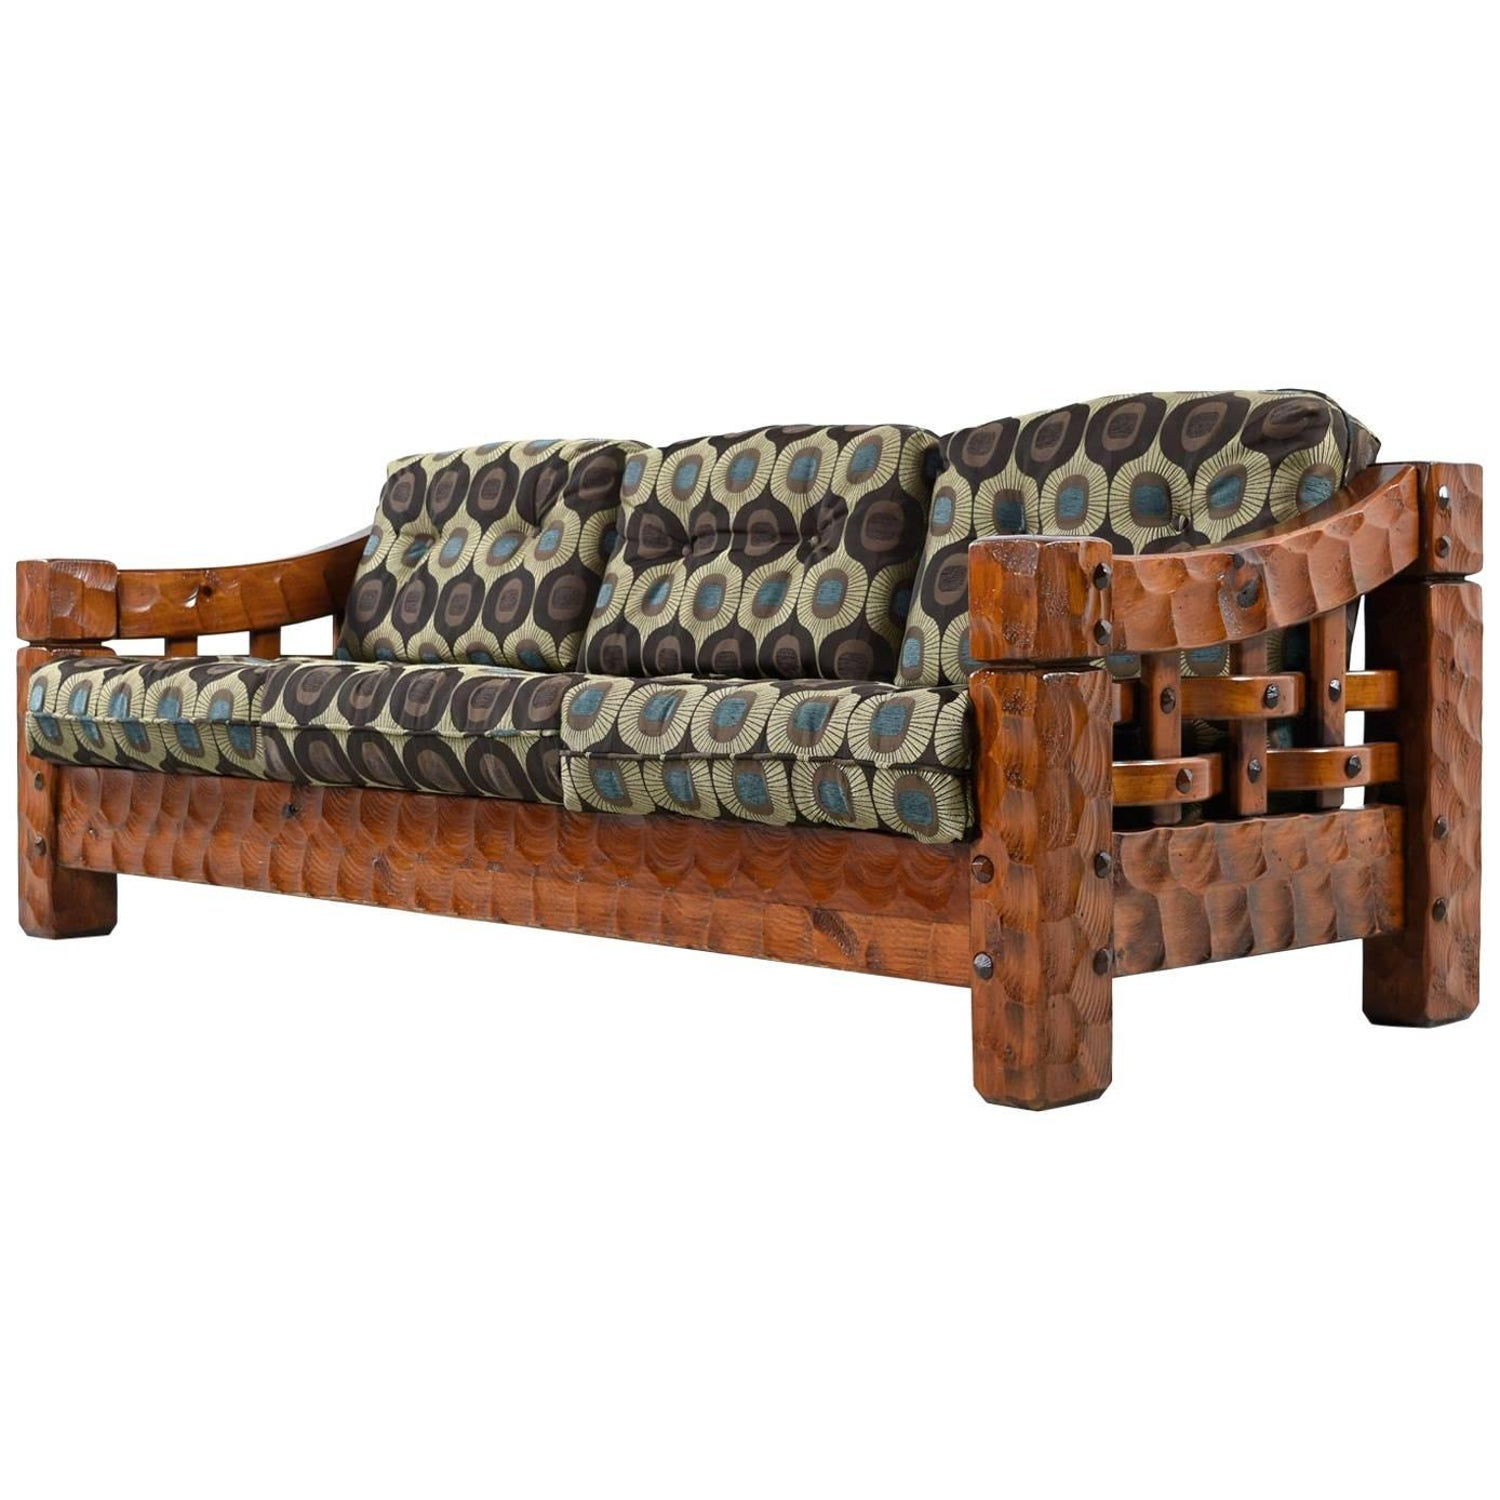 Incredible Rustic Modern Solid Pine Sofa Couch By Null Mfg At 1Stdibs Camellatalisay Diy Chair Ideas Camellatalisaycom